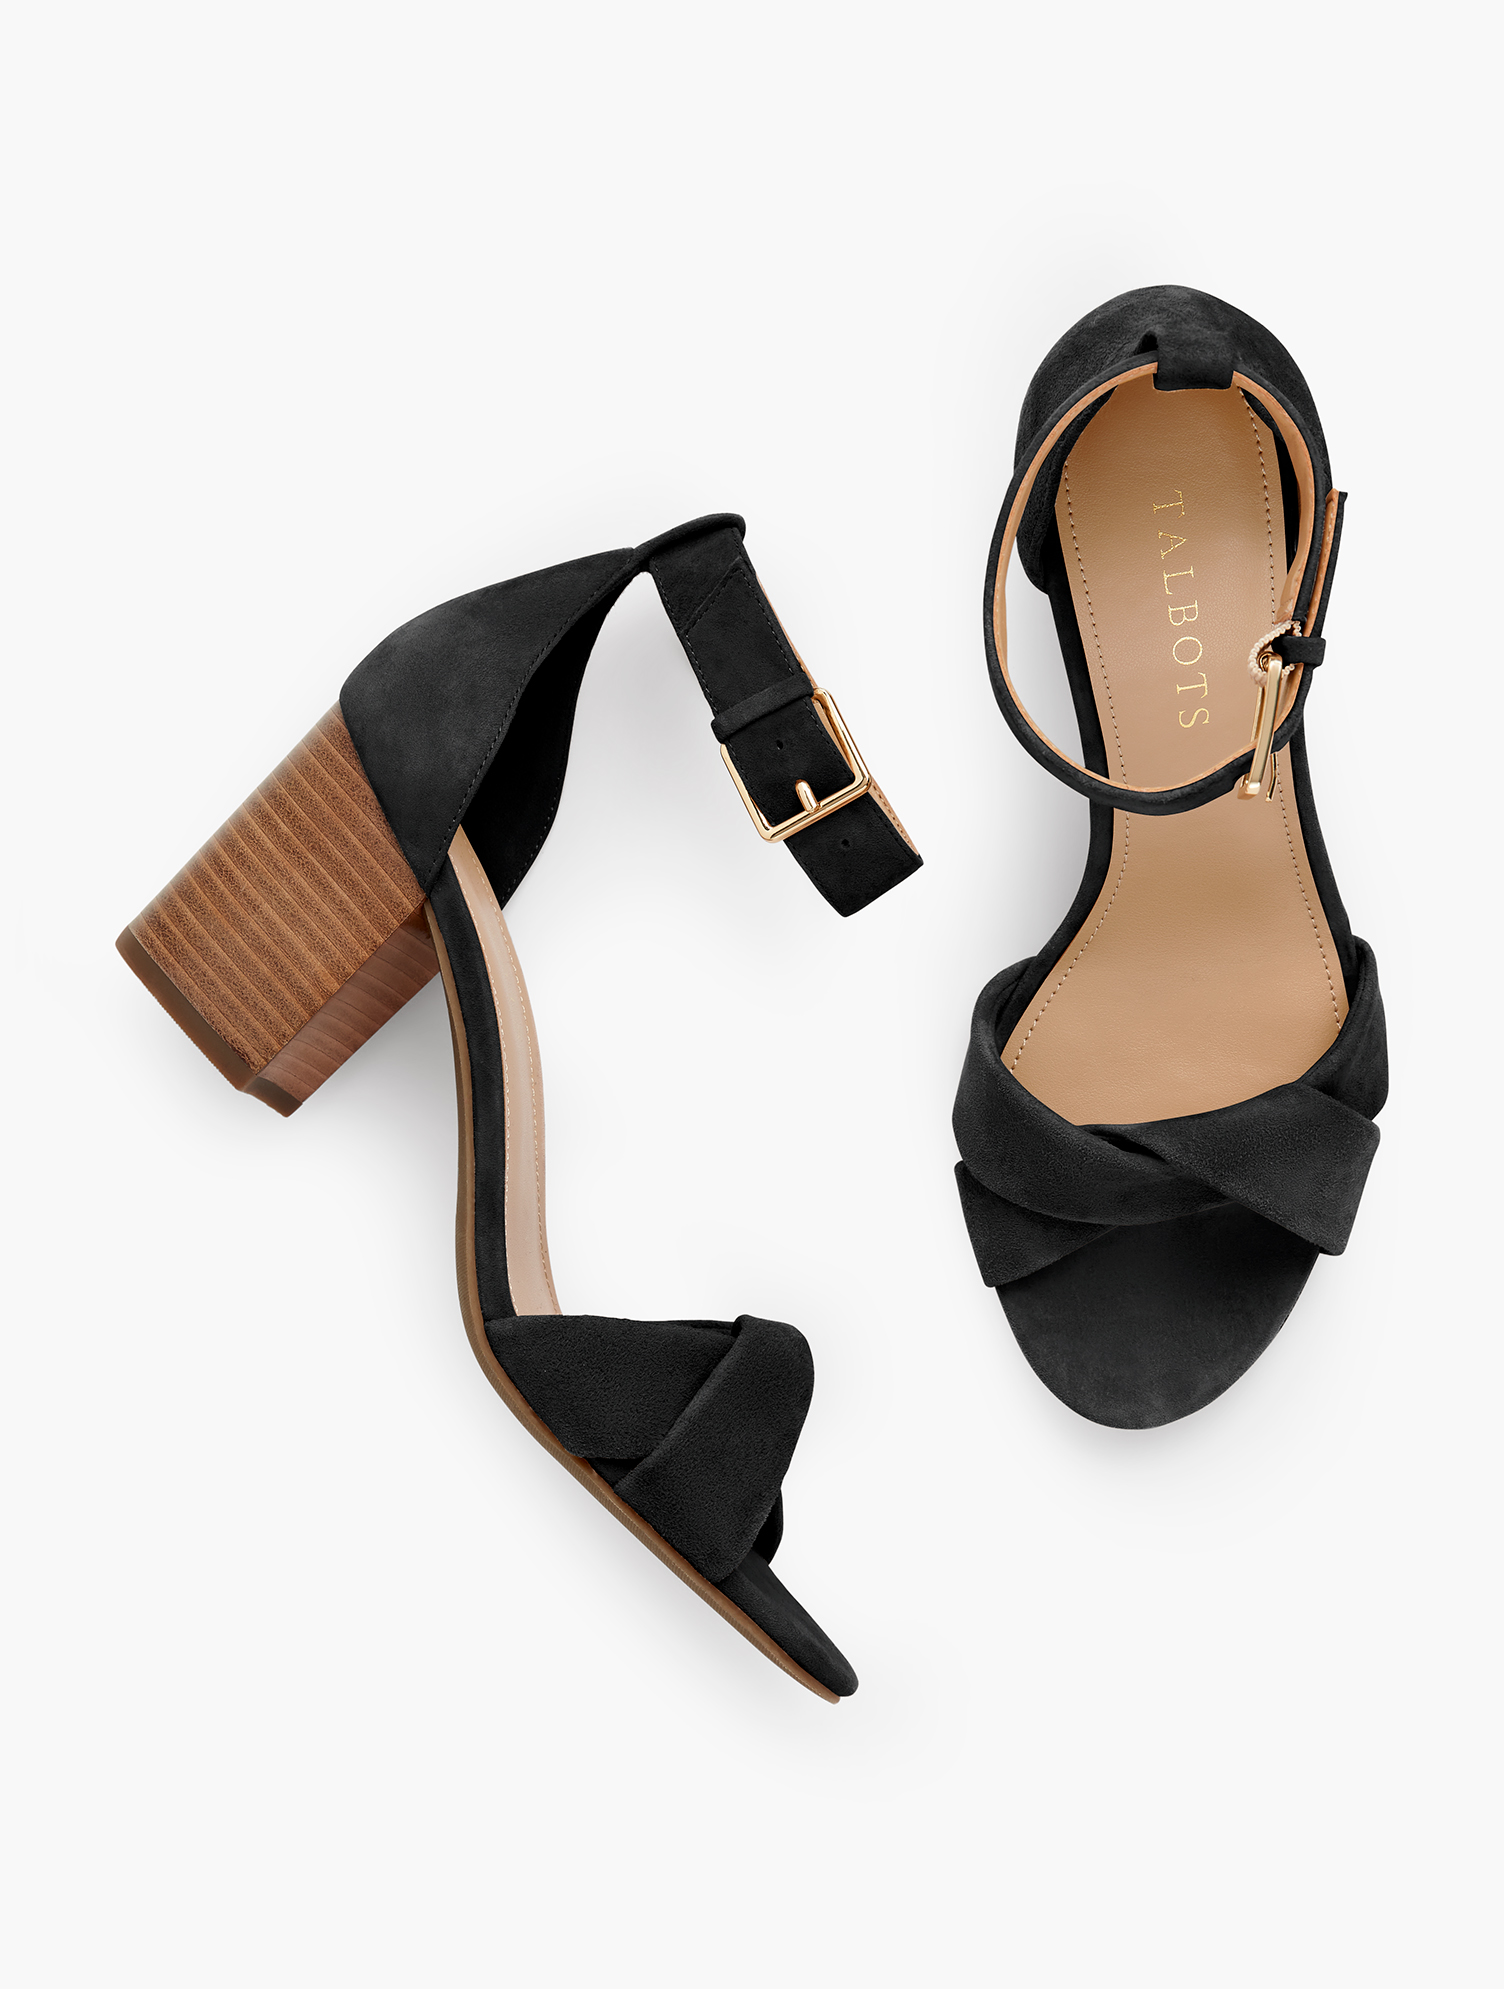 Your favorite block-heel sandals are back and better than ever. Updated with a modern, twist strap across the toes and all new colors. Features Heel Height 2 3/4 inches Almond Toe Natural Stack Heel 3Mm Memory Foam Imported Material: 100% Leather Beatrice Twist Strap Sandals - Black - 11M Talbots